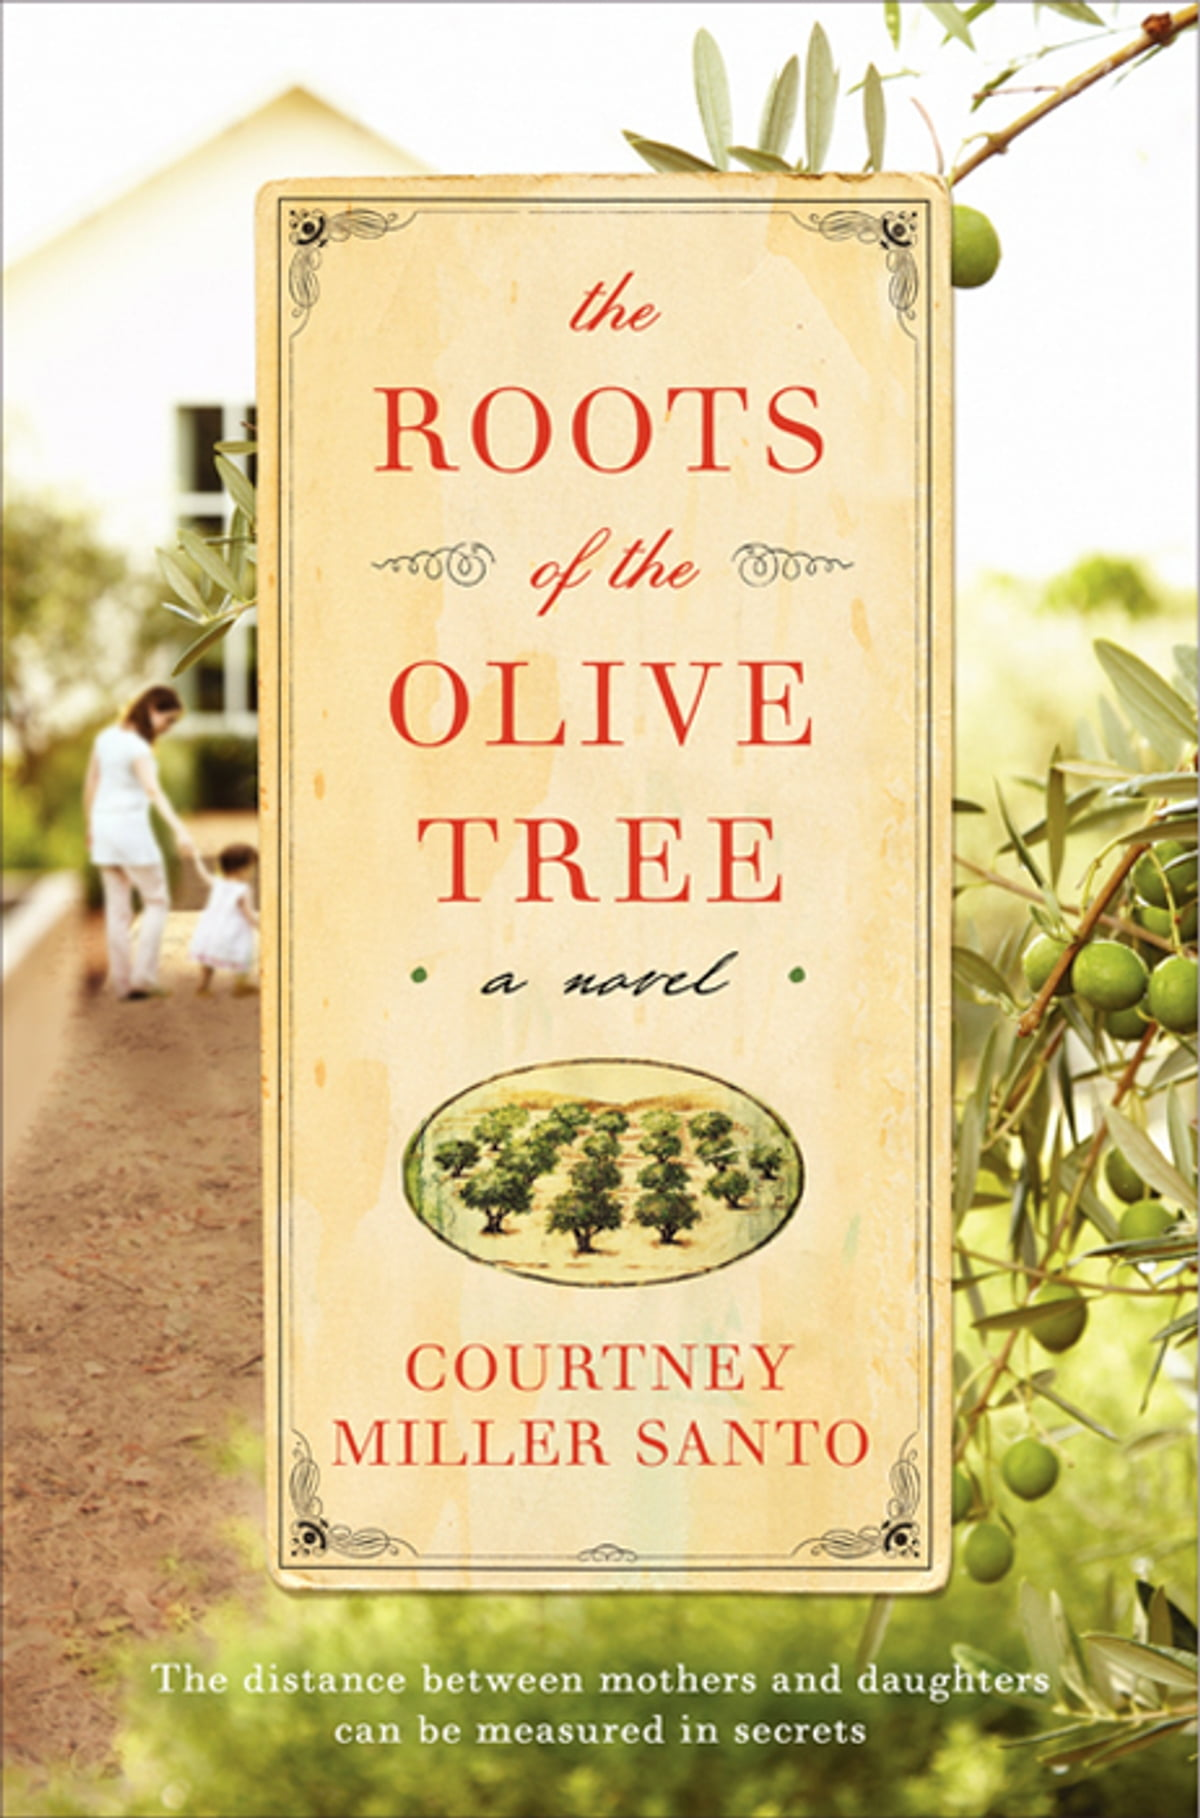 The Roots Of The Olive Tree Ebook By Courtney Miller Santo  9780062130532   Kobo